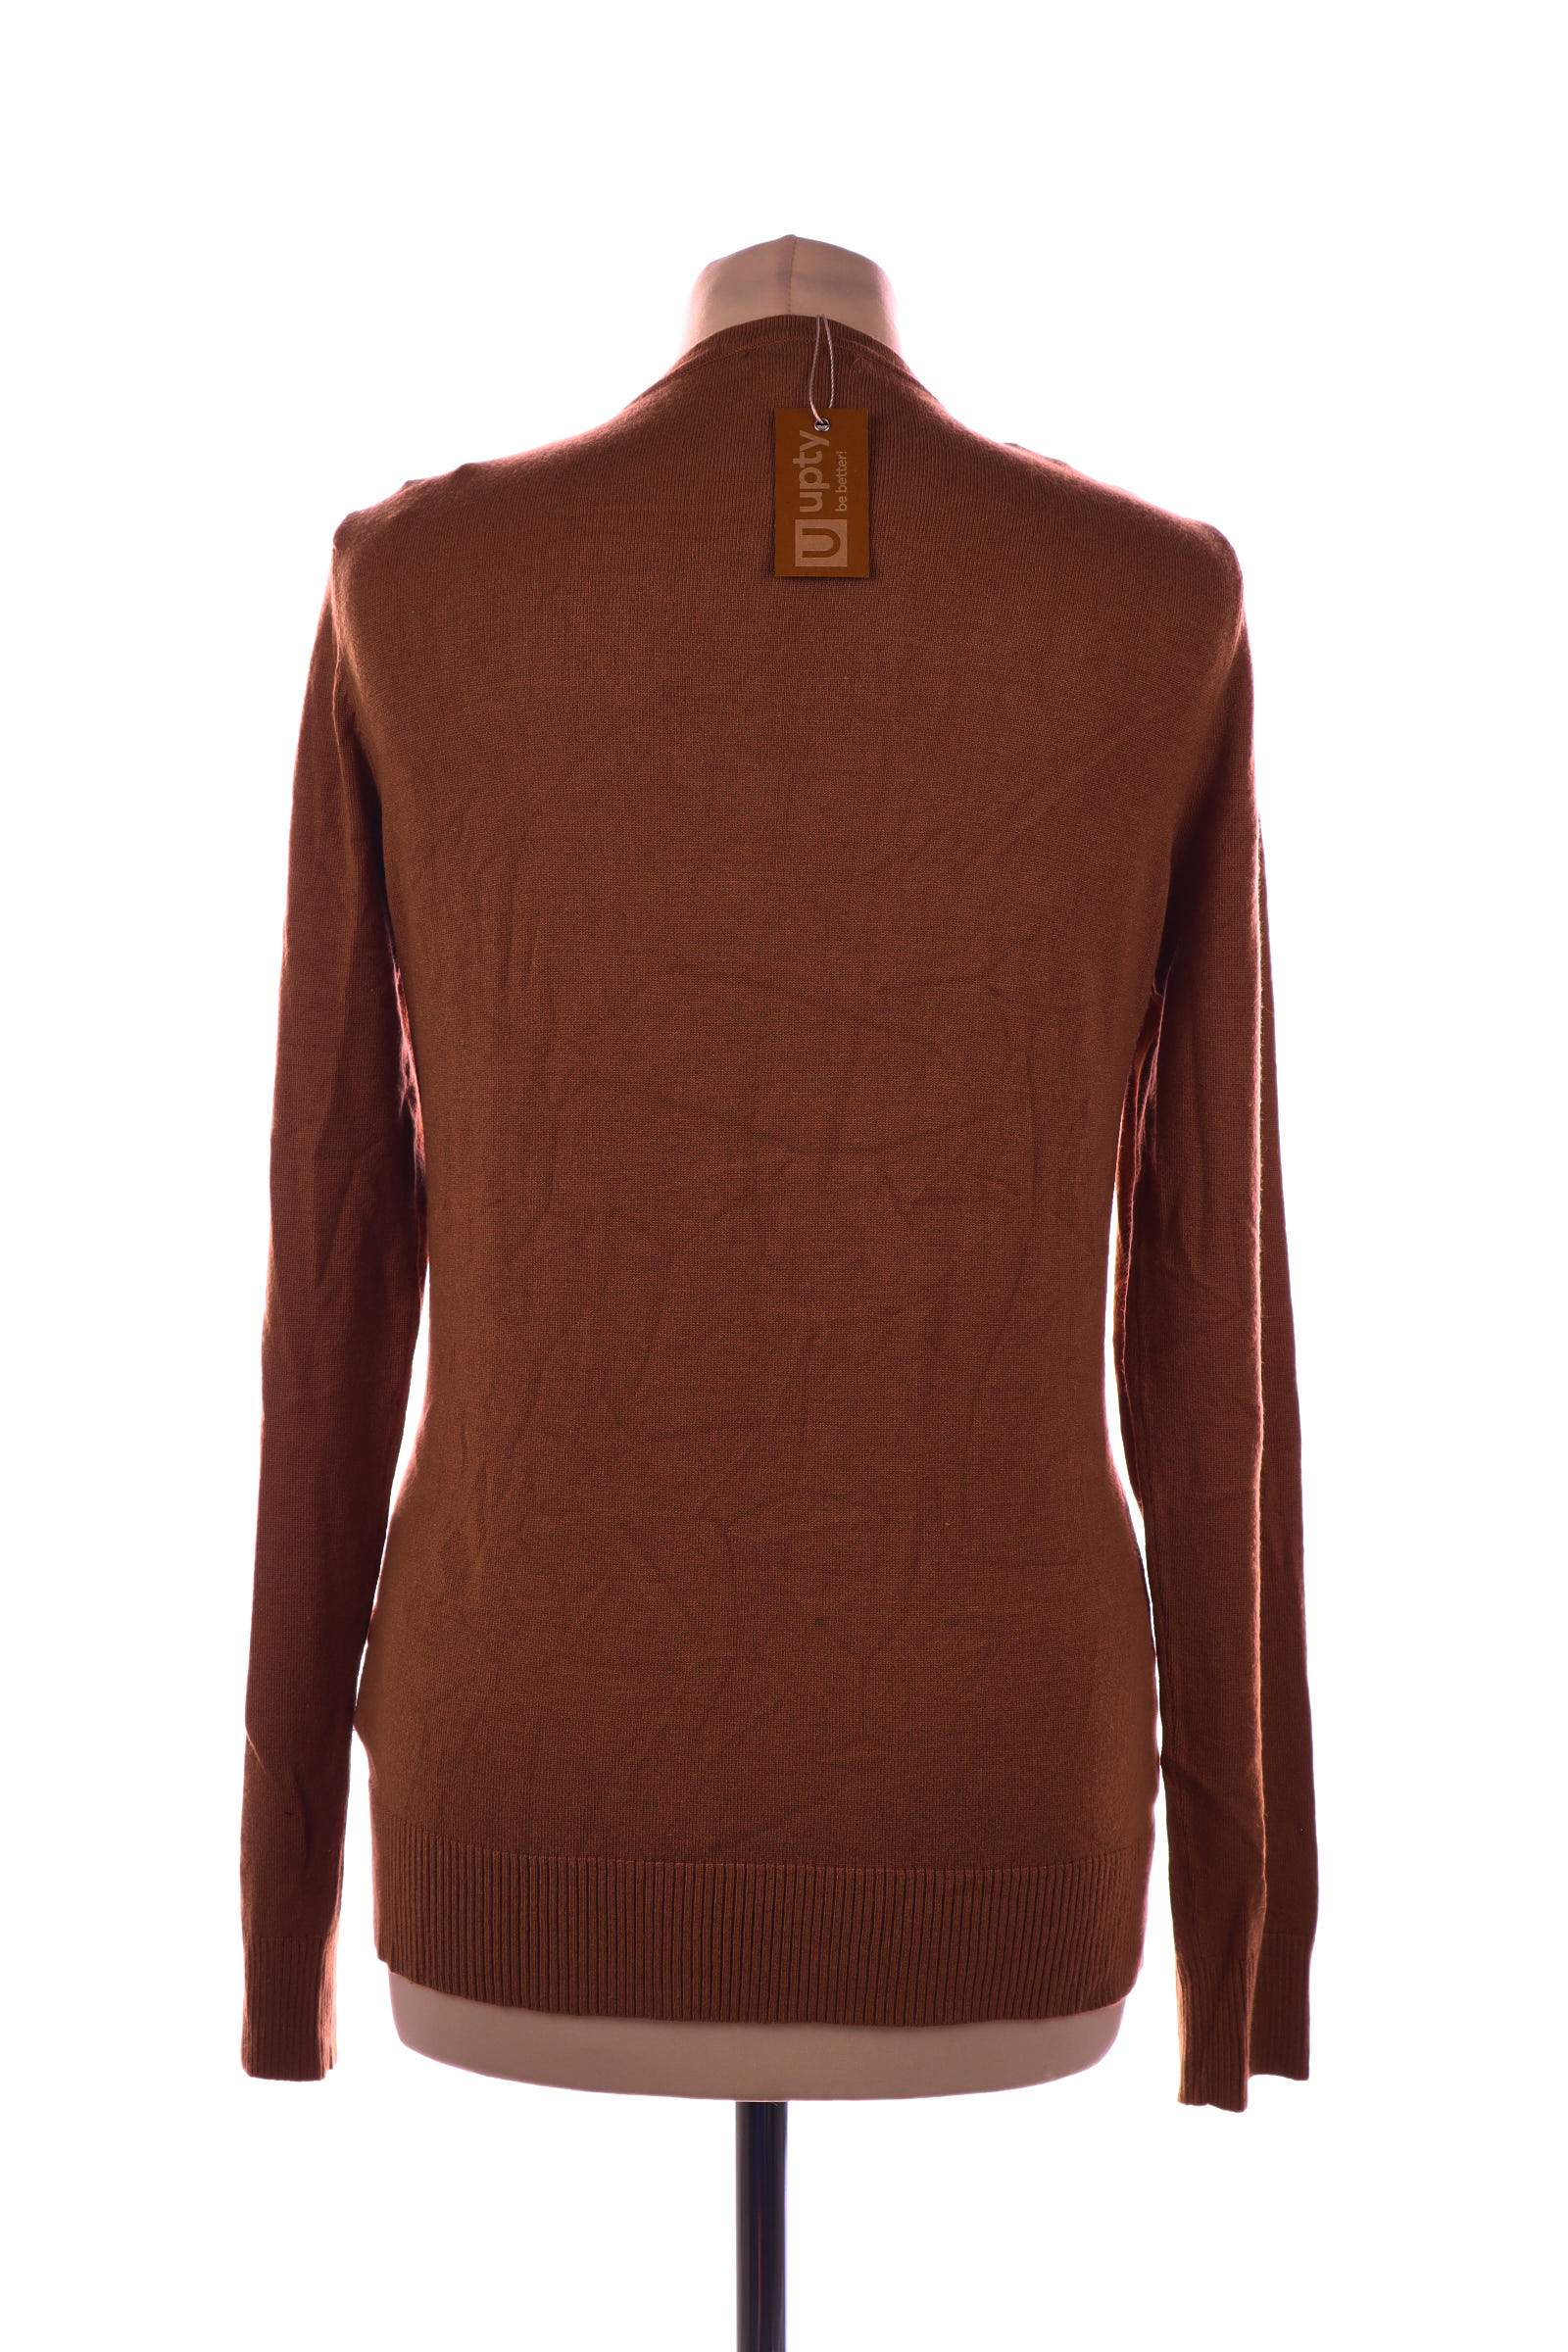 Best Mountain Brown Sweater - upty.store